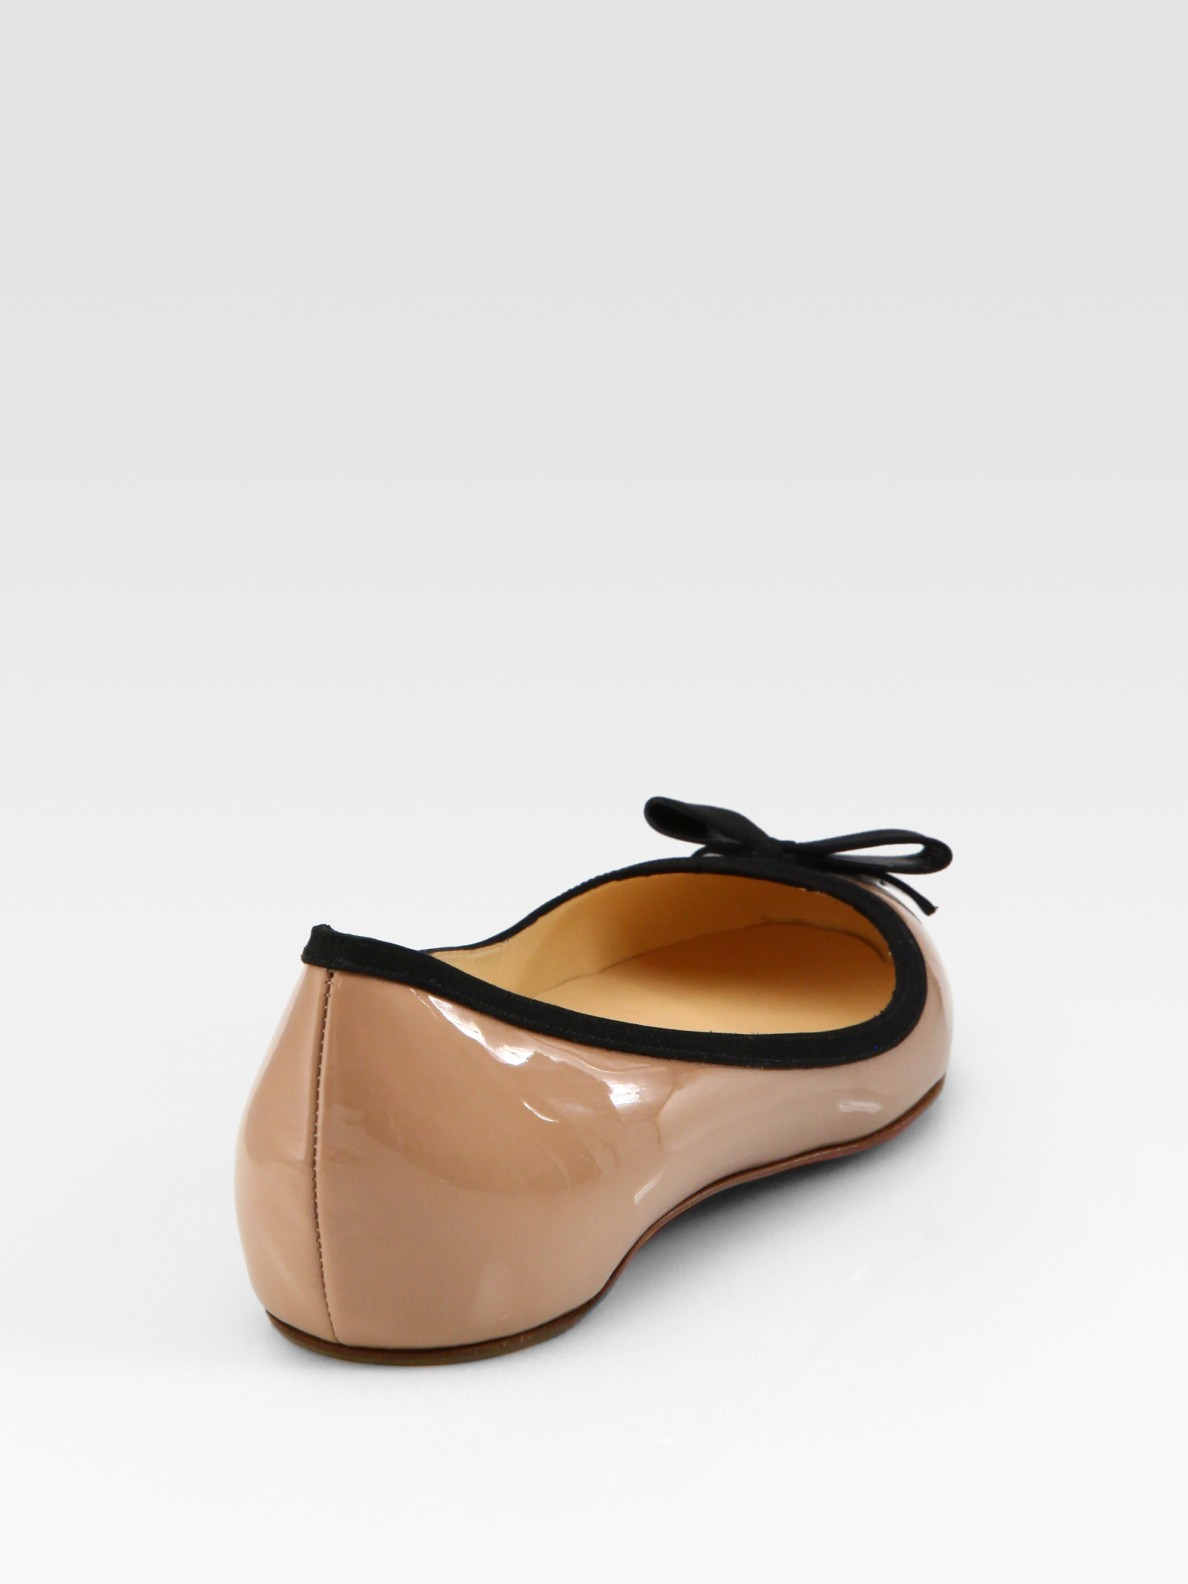 christian louboutin ballet flats Nude leather | Boulder Poetry Tribe